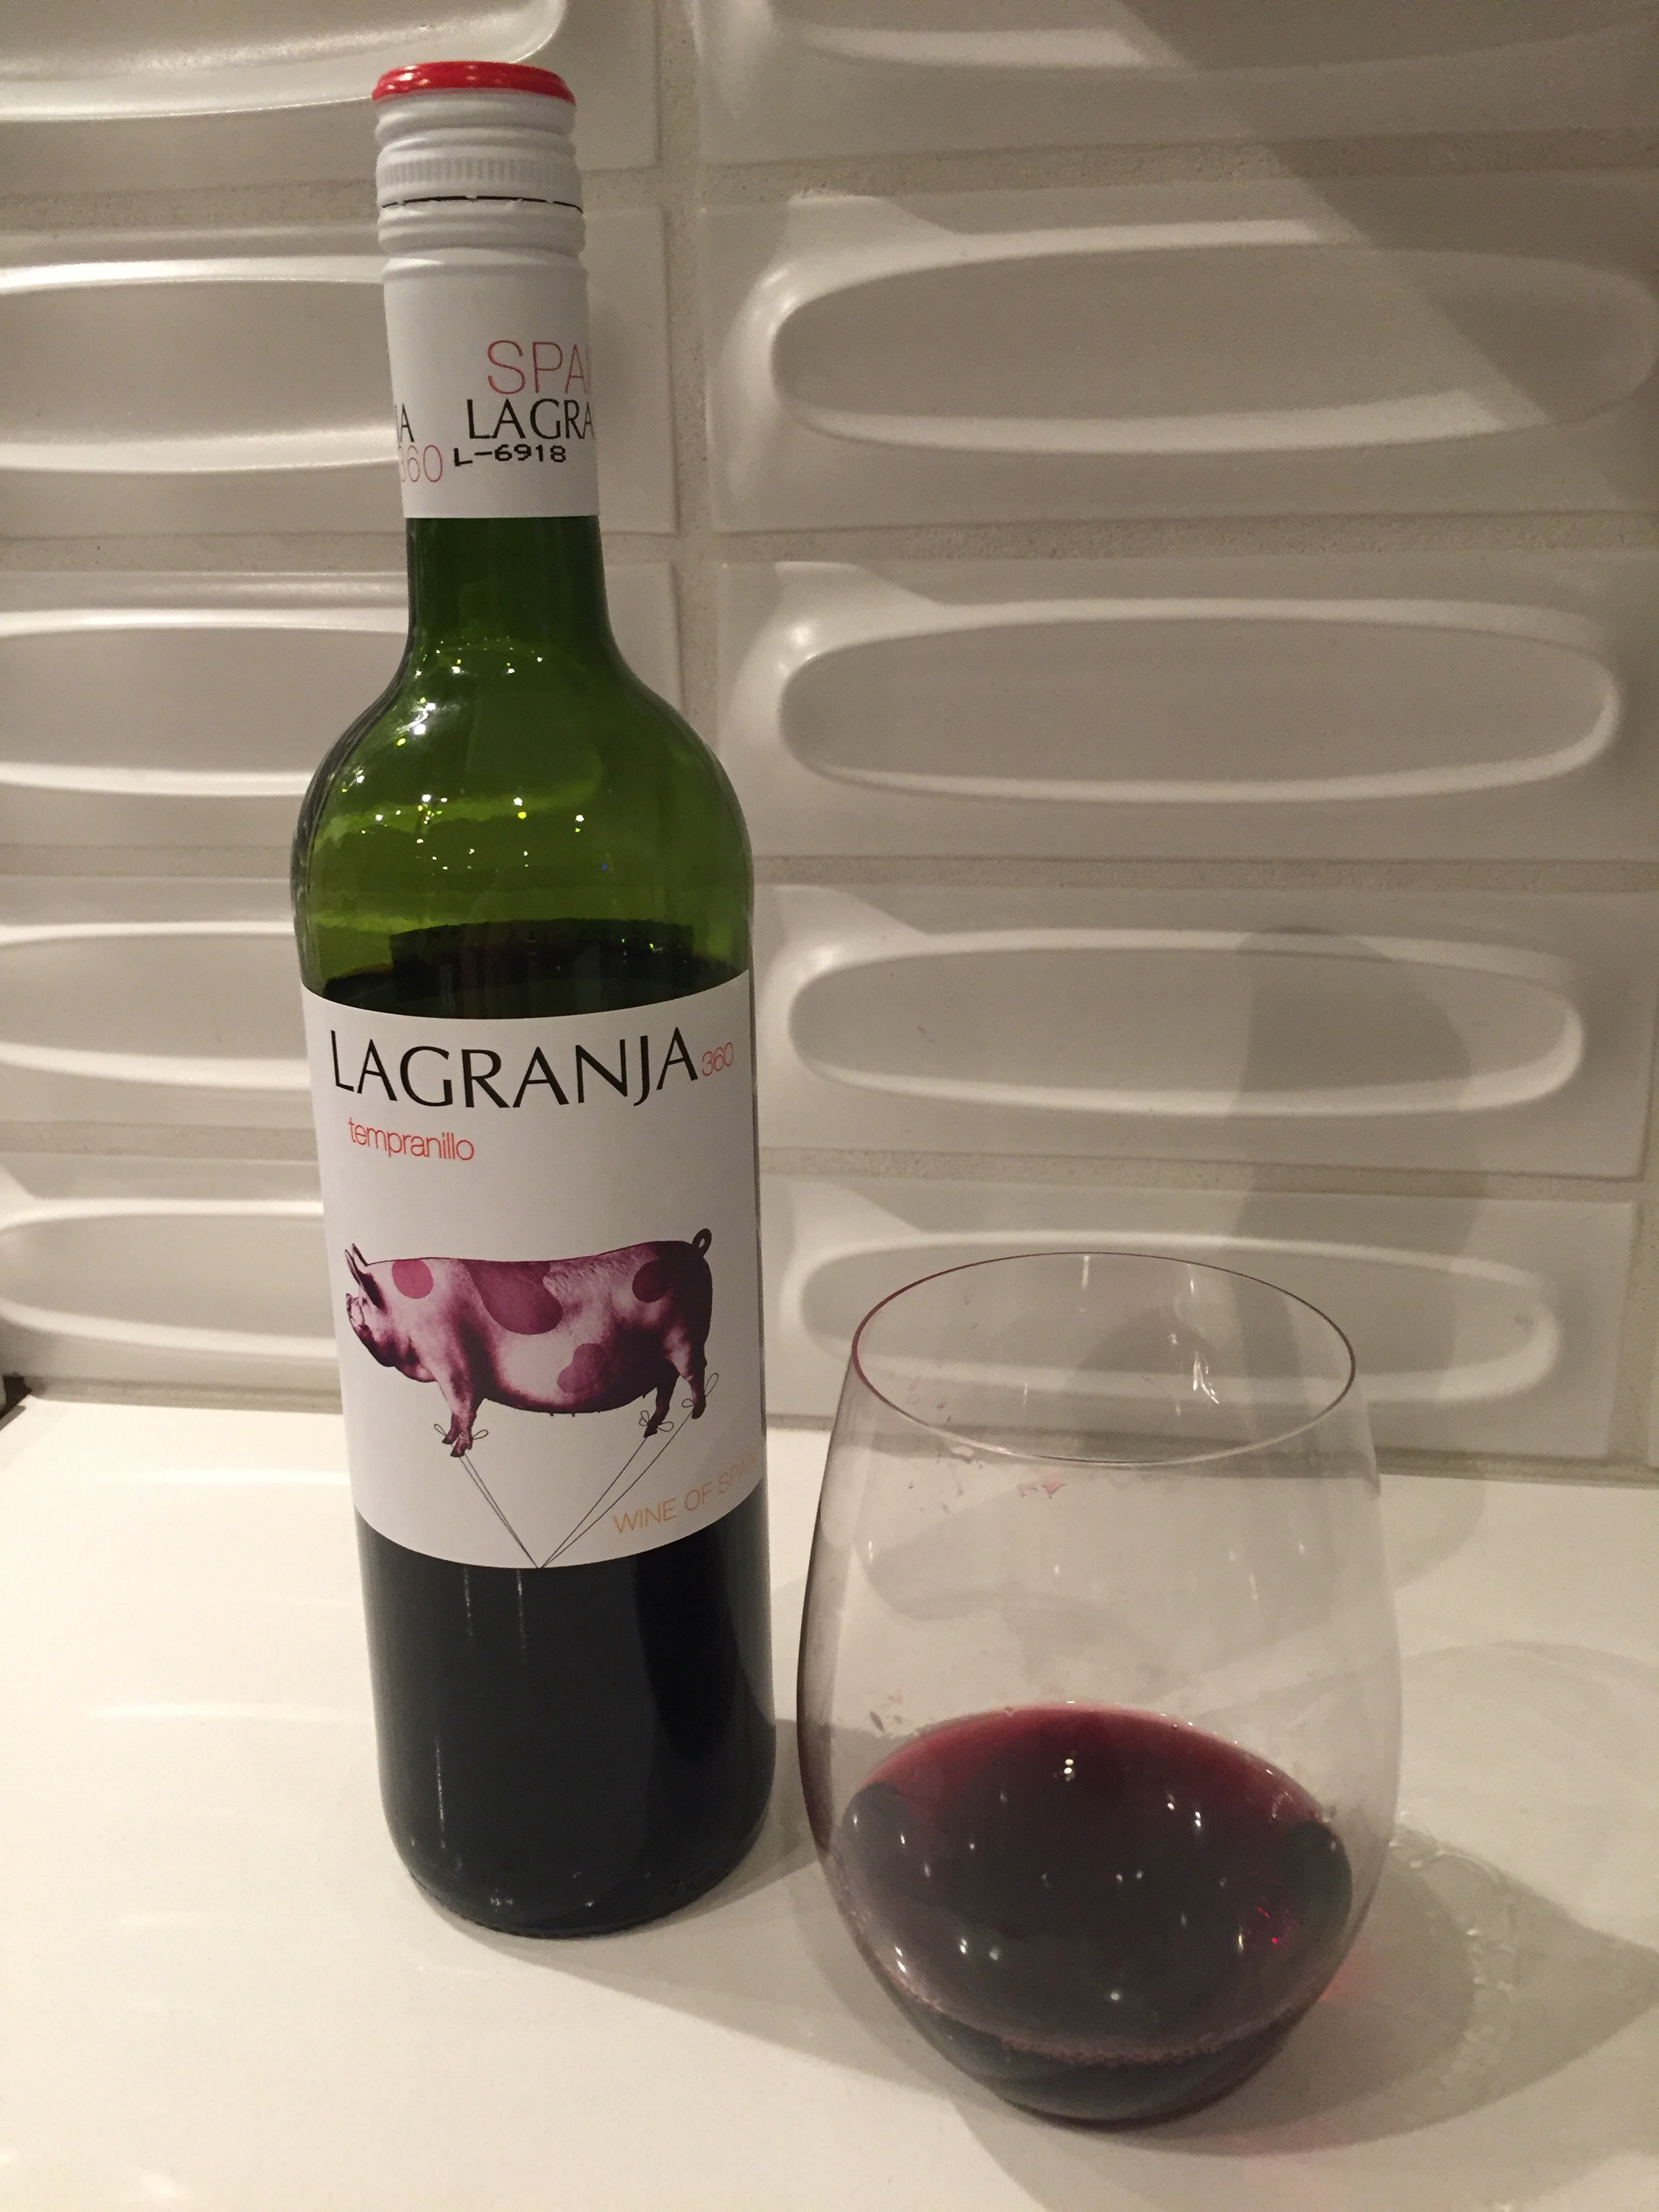 Glass and bottle of La Granja 360 Tempranillo from Trader Joe's